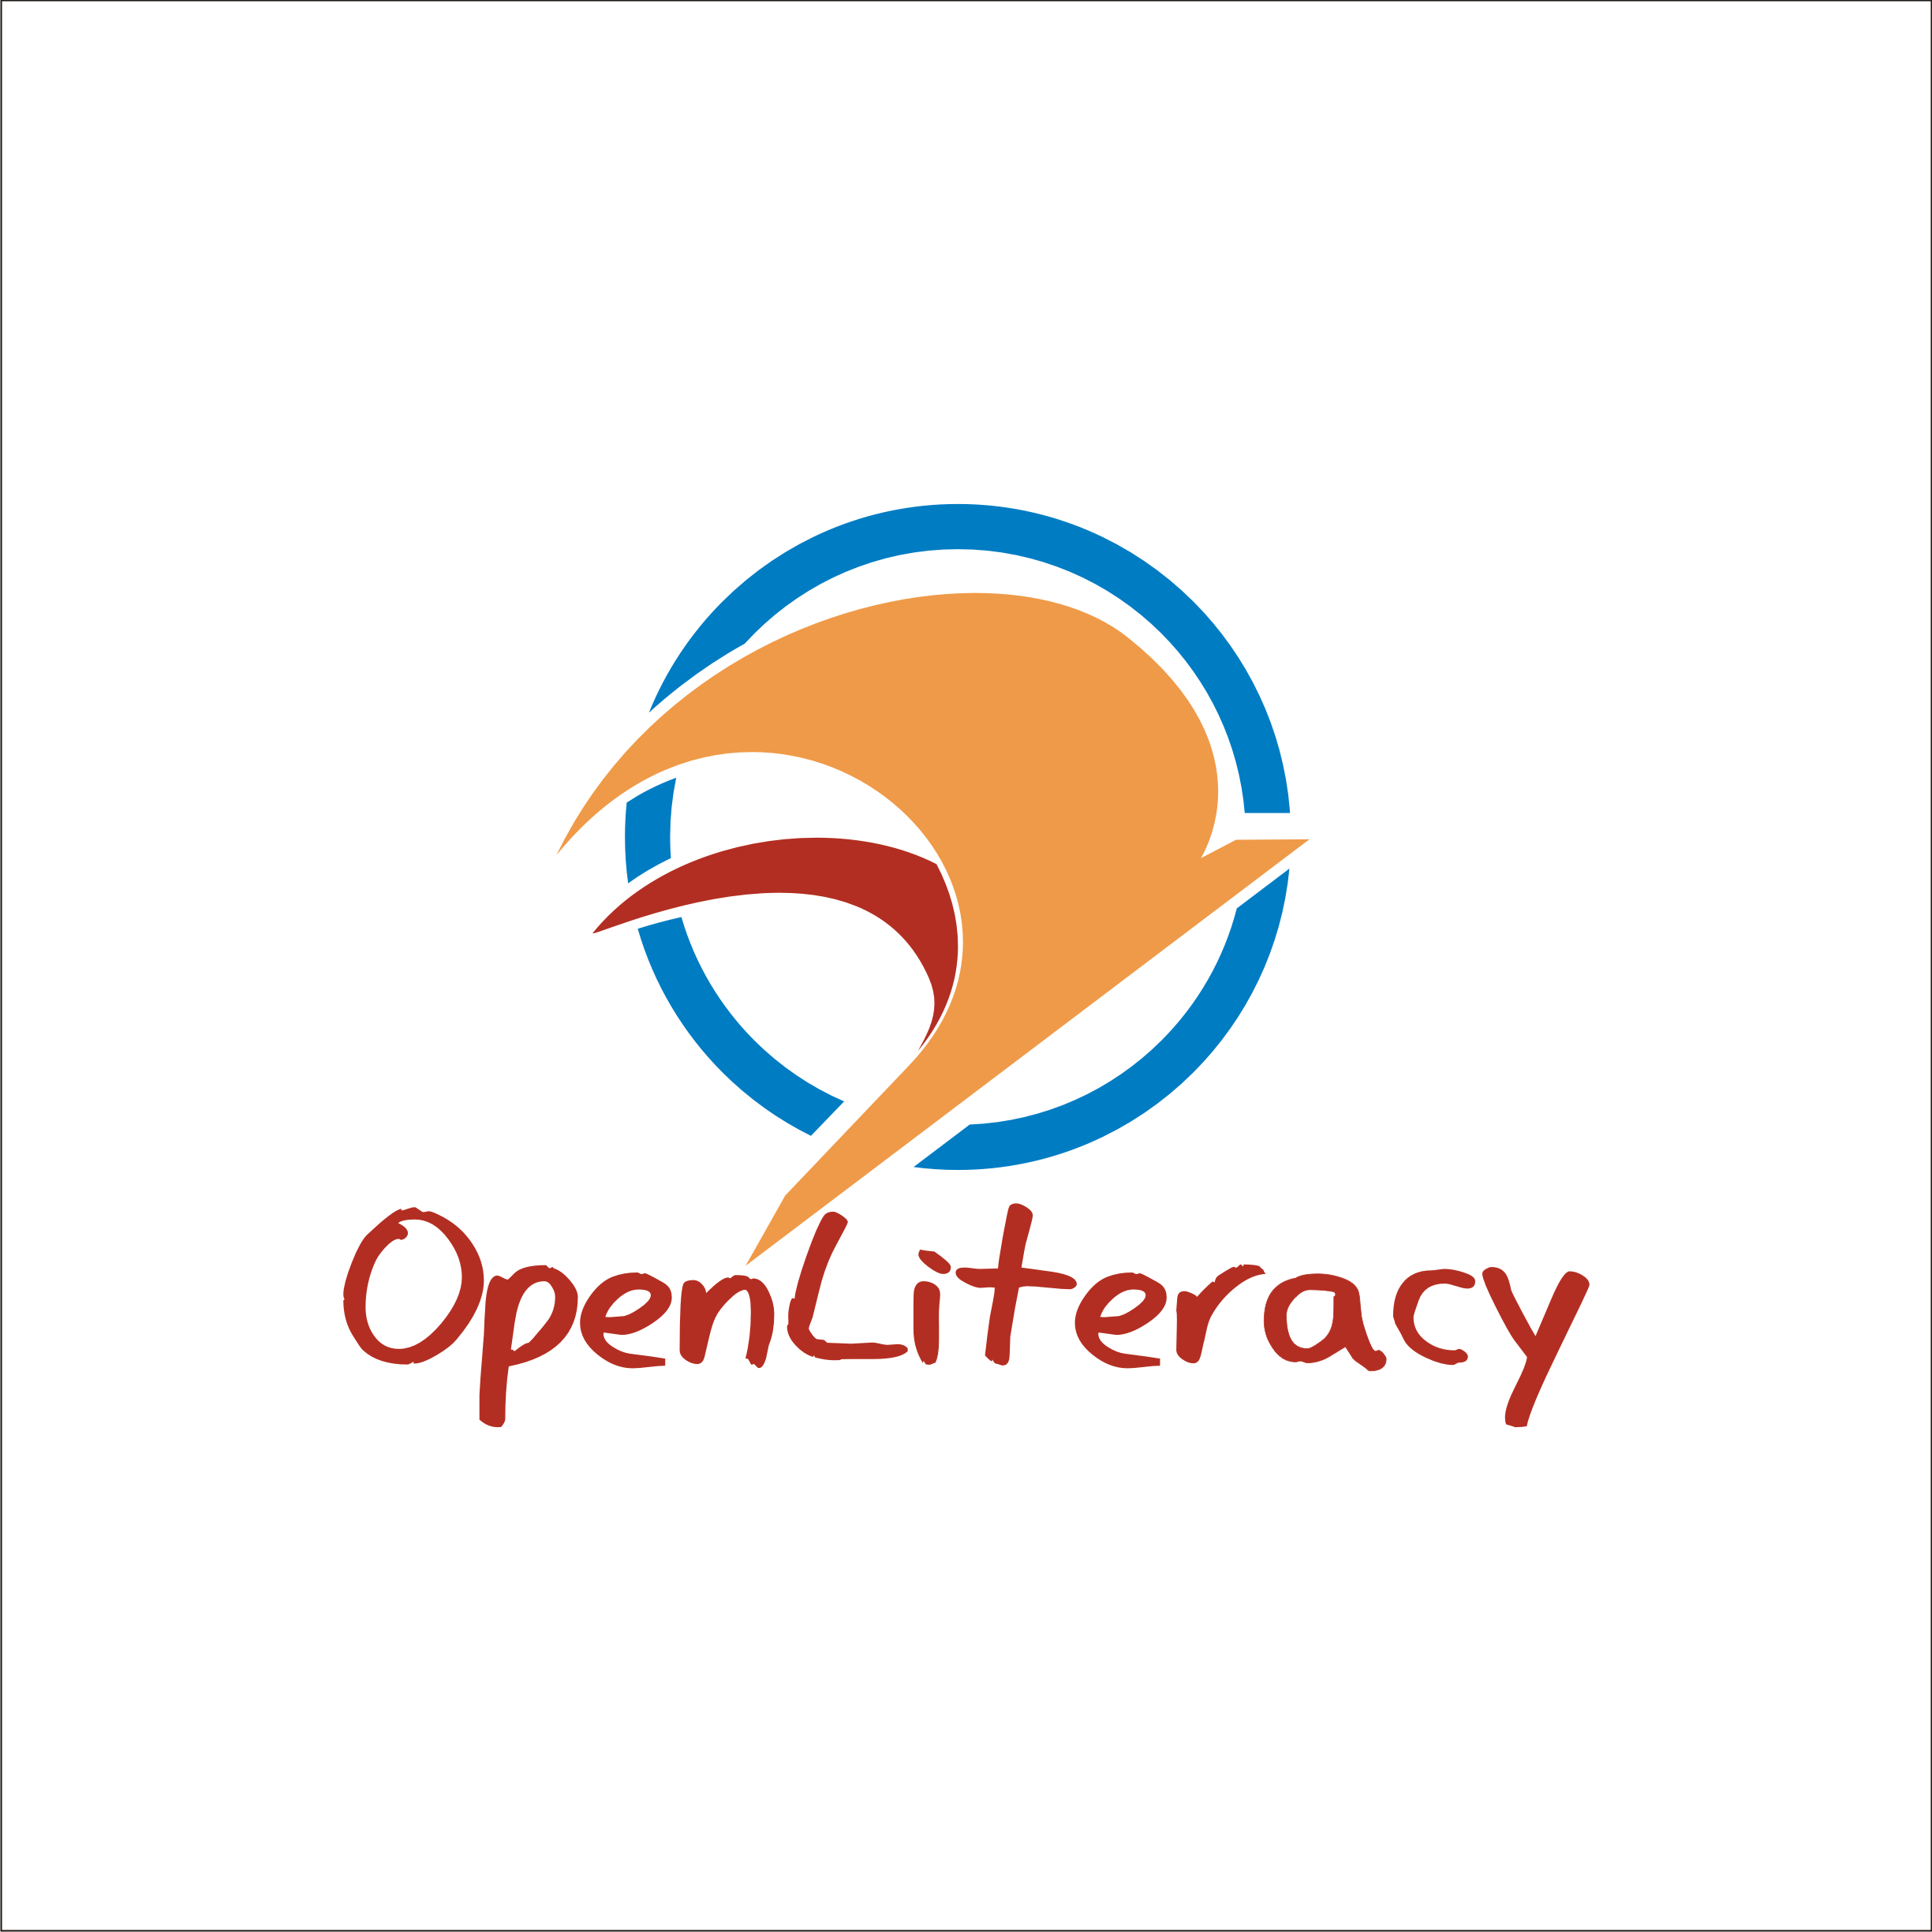 Logo Design by Private User - Entry No. 131 in the Logo Design Contest Inspiring Logo Design for OpenLiteracy.